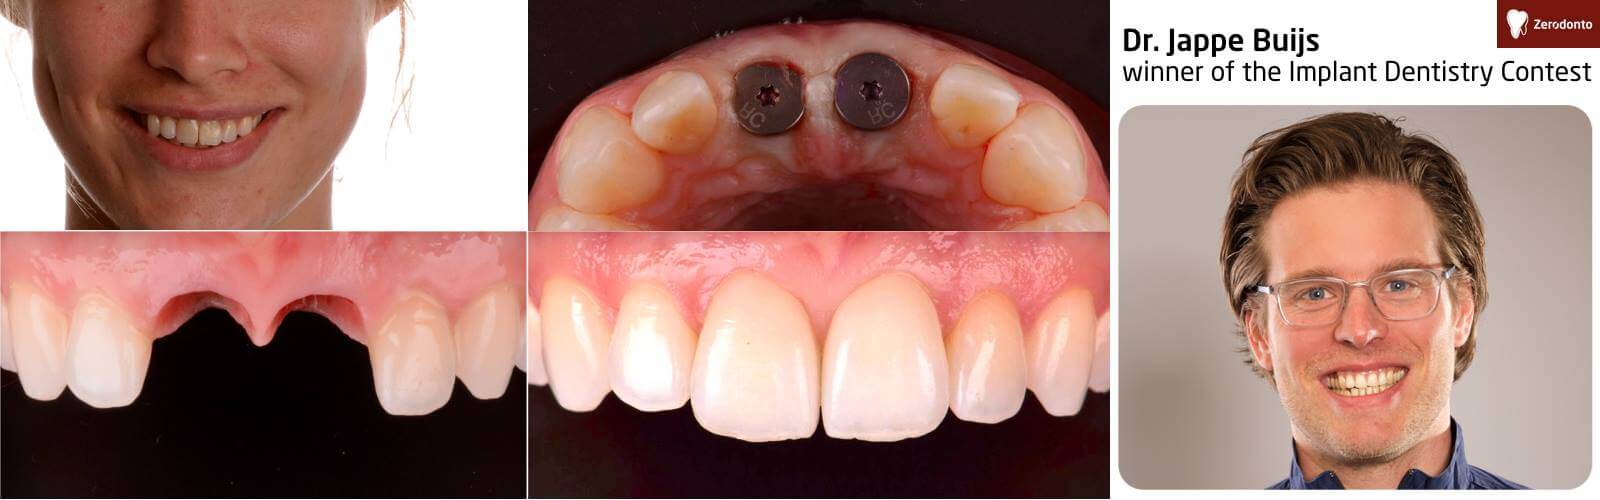 Implant Dentistry Contest – contest #2